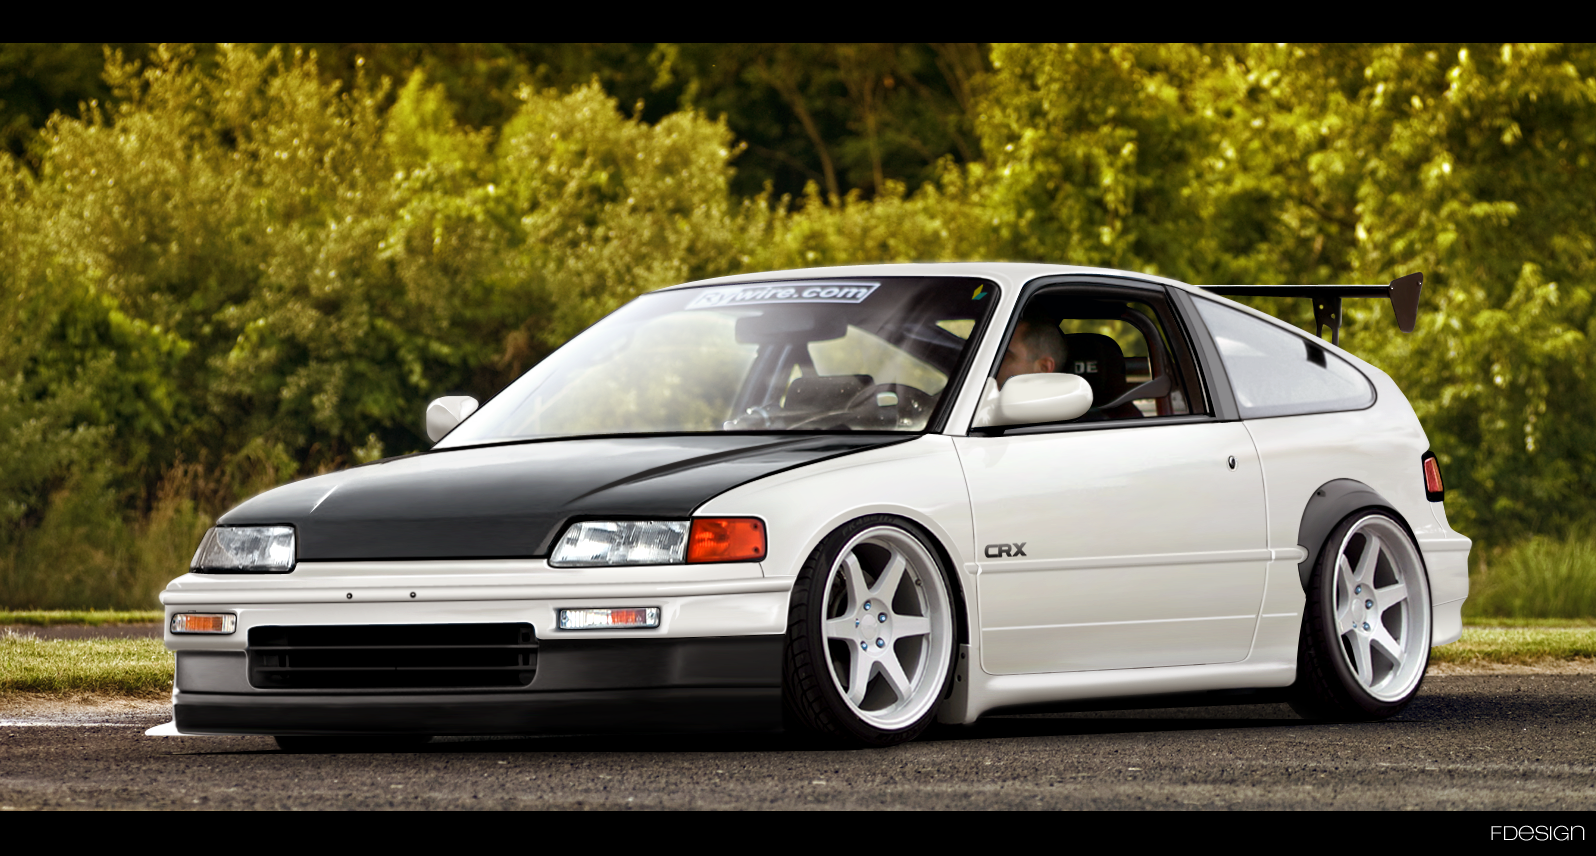 Honda Civic Crx #9